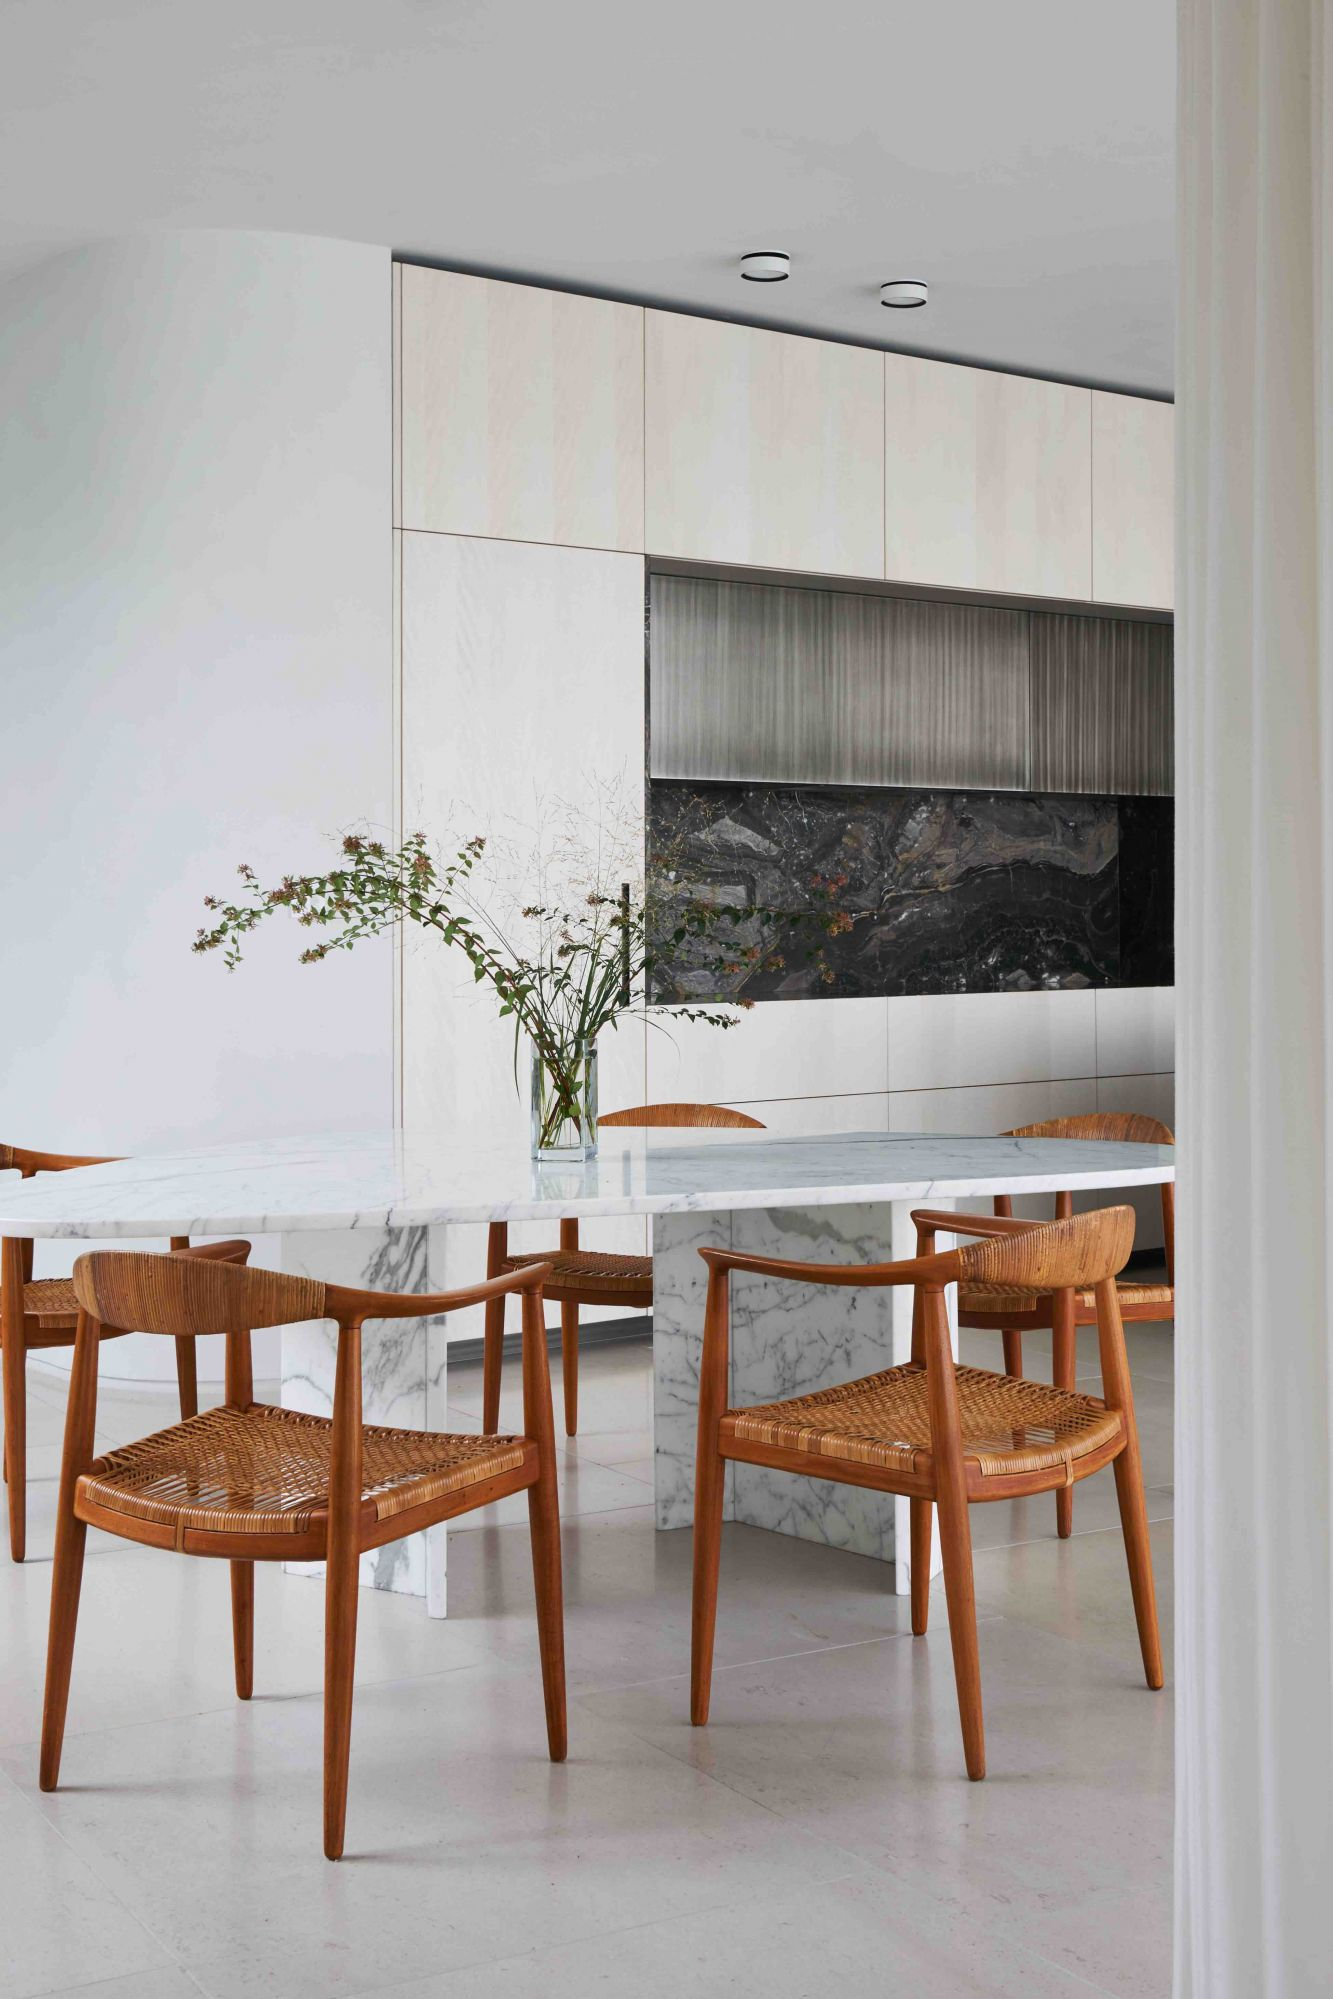 London-based architecture and design practice DH Liberty utilised black granite as an accent backsplash to deliver impact in a minimalist kitchen.